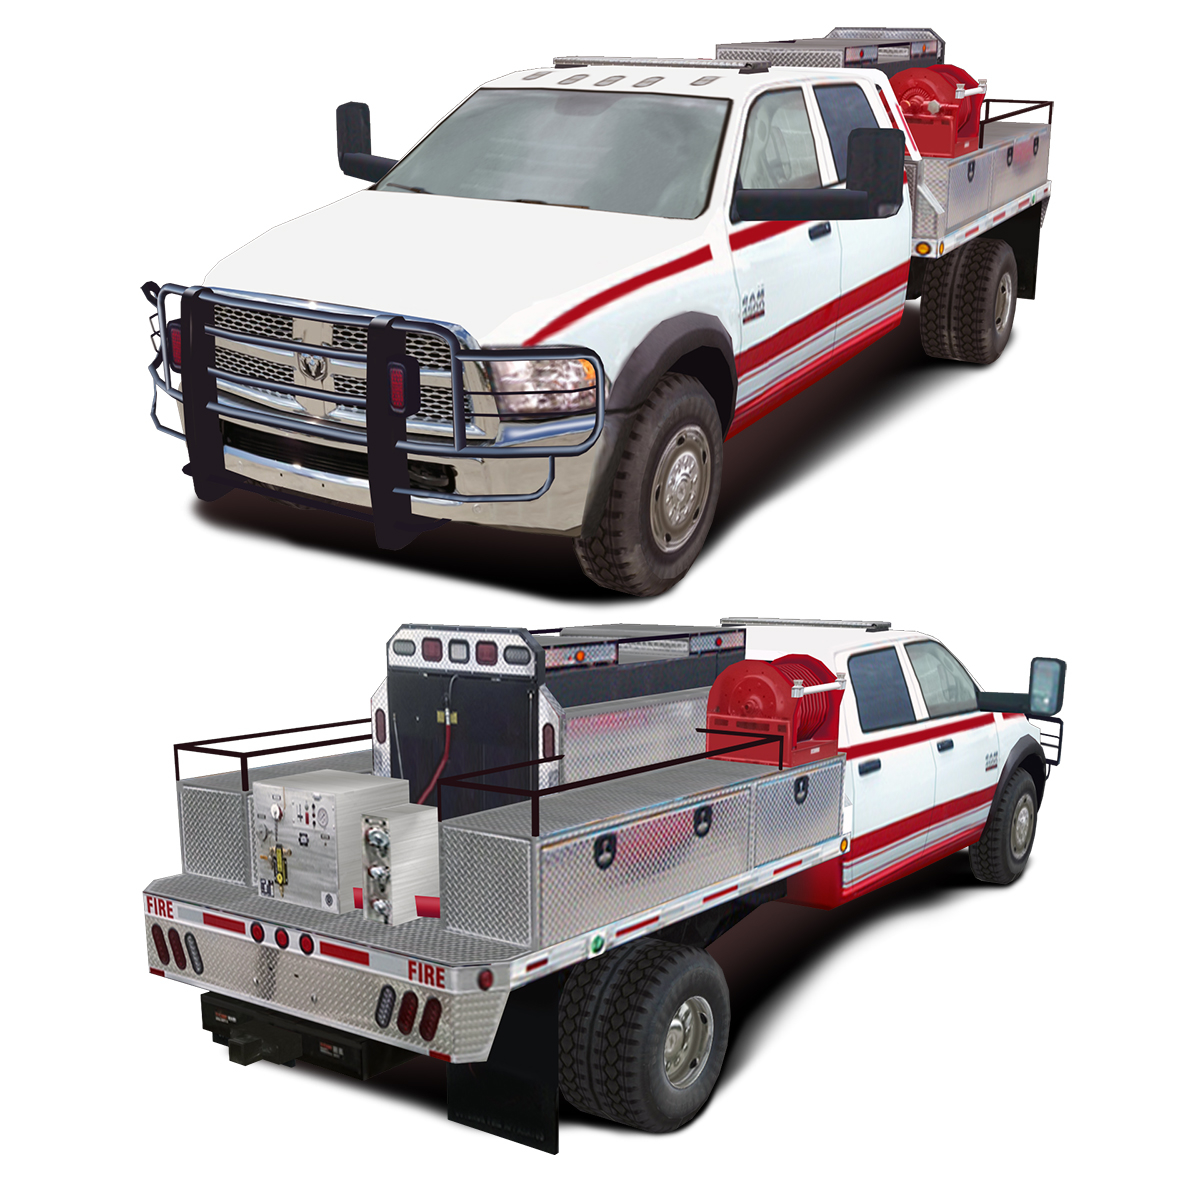 Dodge 5500 >> Dodge 5500 Alpine Series 4x4 Brush Truck